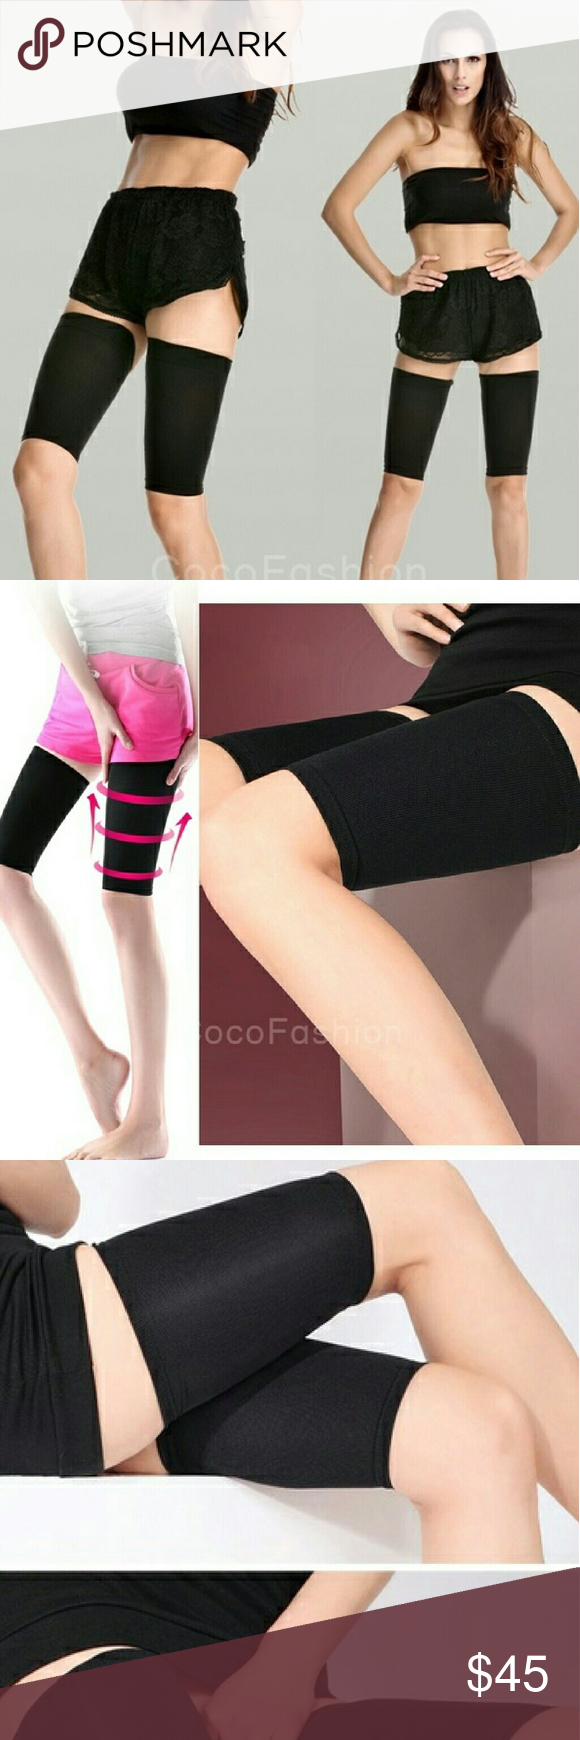 a957e4049e (2) Thigh Shapers-Slim and Tone your thighs Women Beauty Slim Weight Loss  Thigh leg Massage Shaper Comfy Ultra-thin Elastic Breatheable Leg Wrap Belt